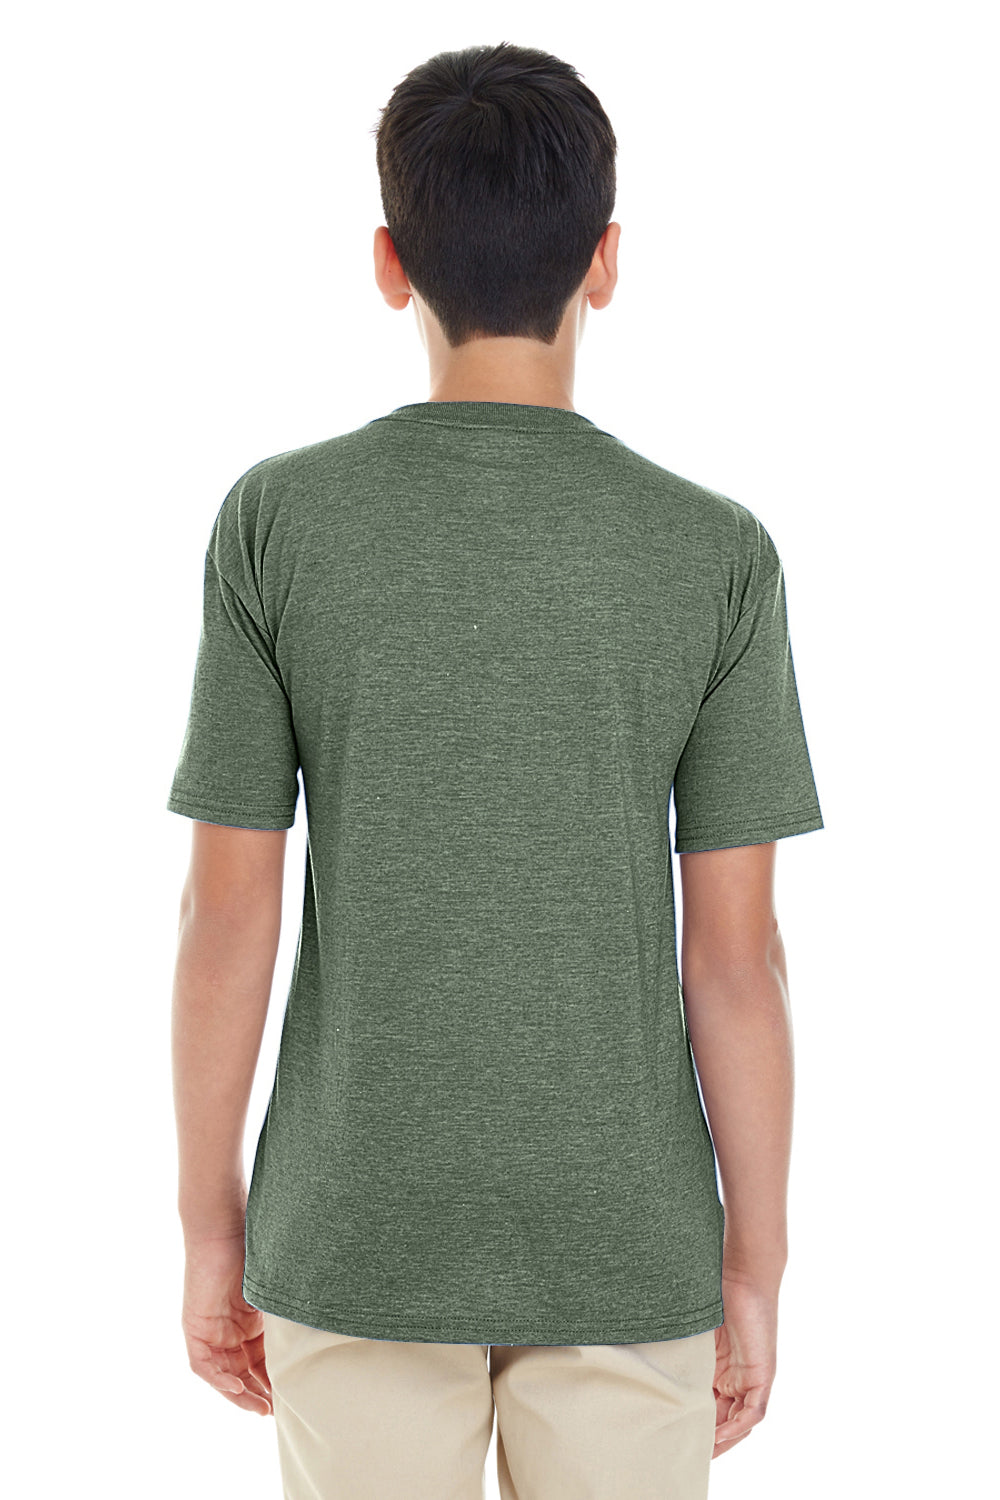 Gildan G645B Youth Softstyle Short Sleeve Crewneck T-Shirt Heather Military Green Back